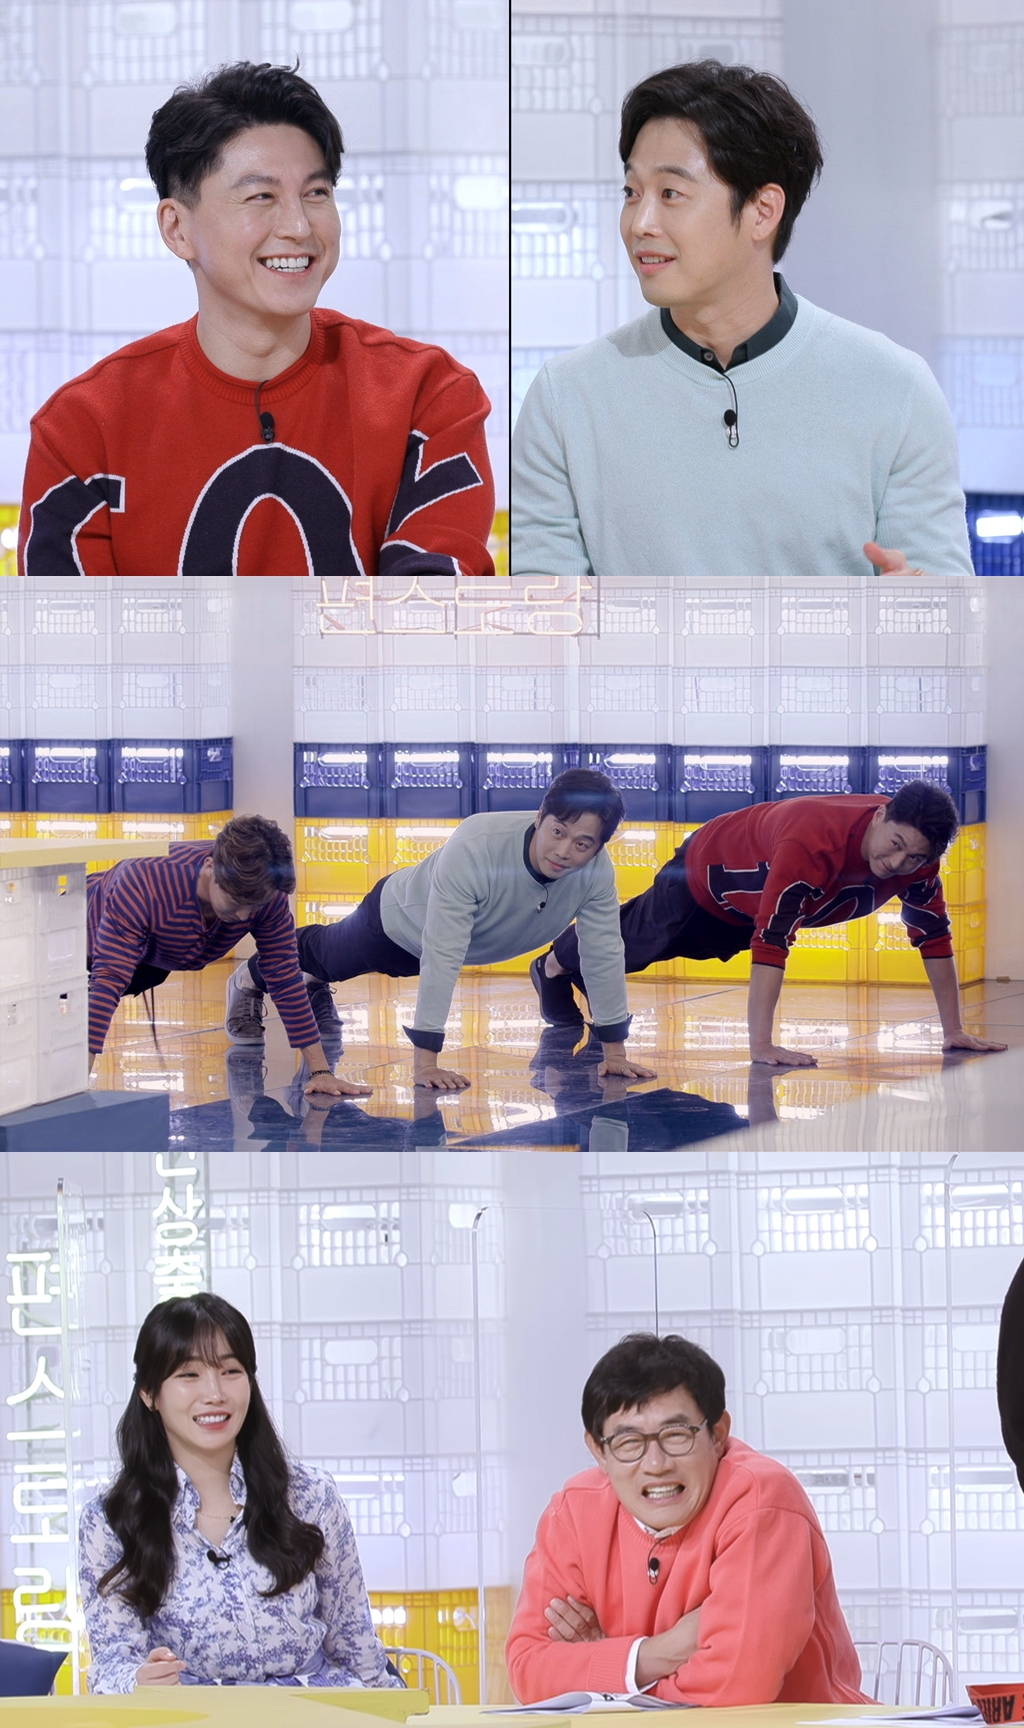 'Stars' Top Recipe at Fun-Staurant' Kim Jae-won, Ryu Soo-young, Heo Kyung-hwan, pride tendon push-ups